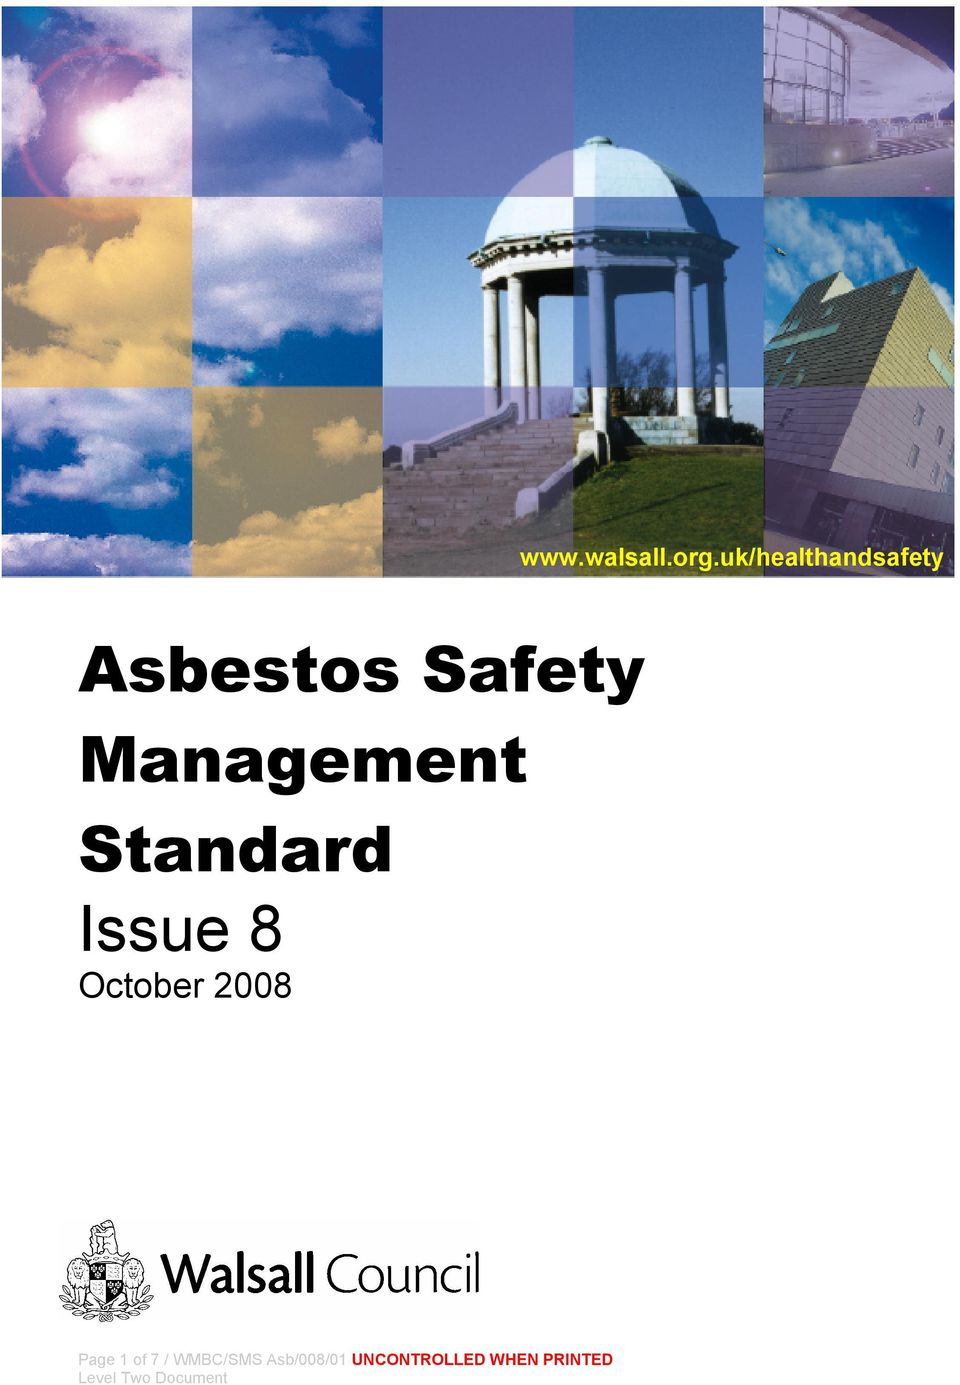 Management Standard Issue 8 October